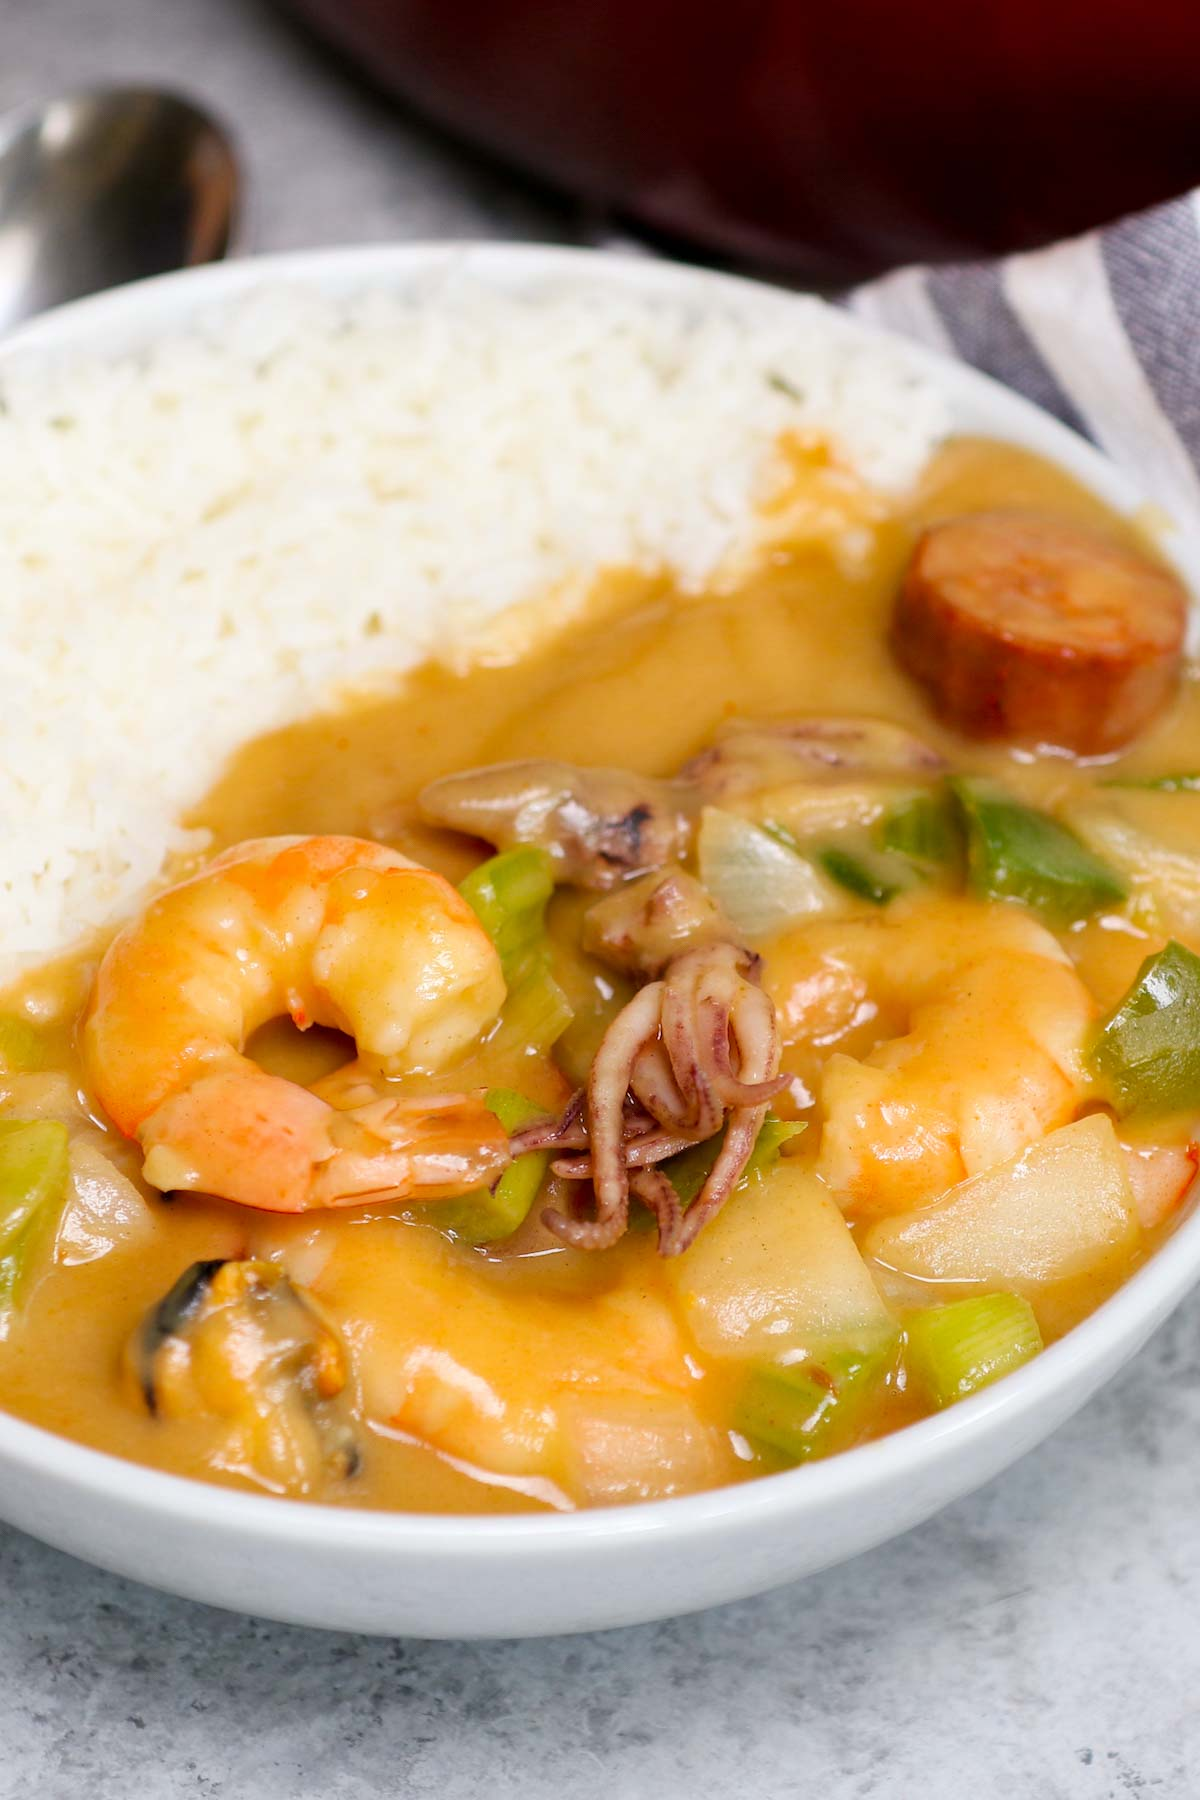 This Authentic Louisiana Seafood Gumbo is hearty, comforting, and made with a flavorful roux, mixed seafood, sausage, and vegetables. If you take a trip to New Orleans, you're sure to find gumbo on the menu. Now, you can recreate this delicious gumbo recipe in the comfort of your own home.